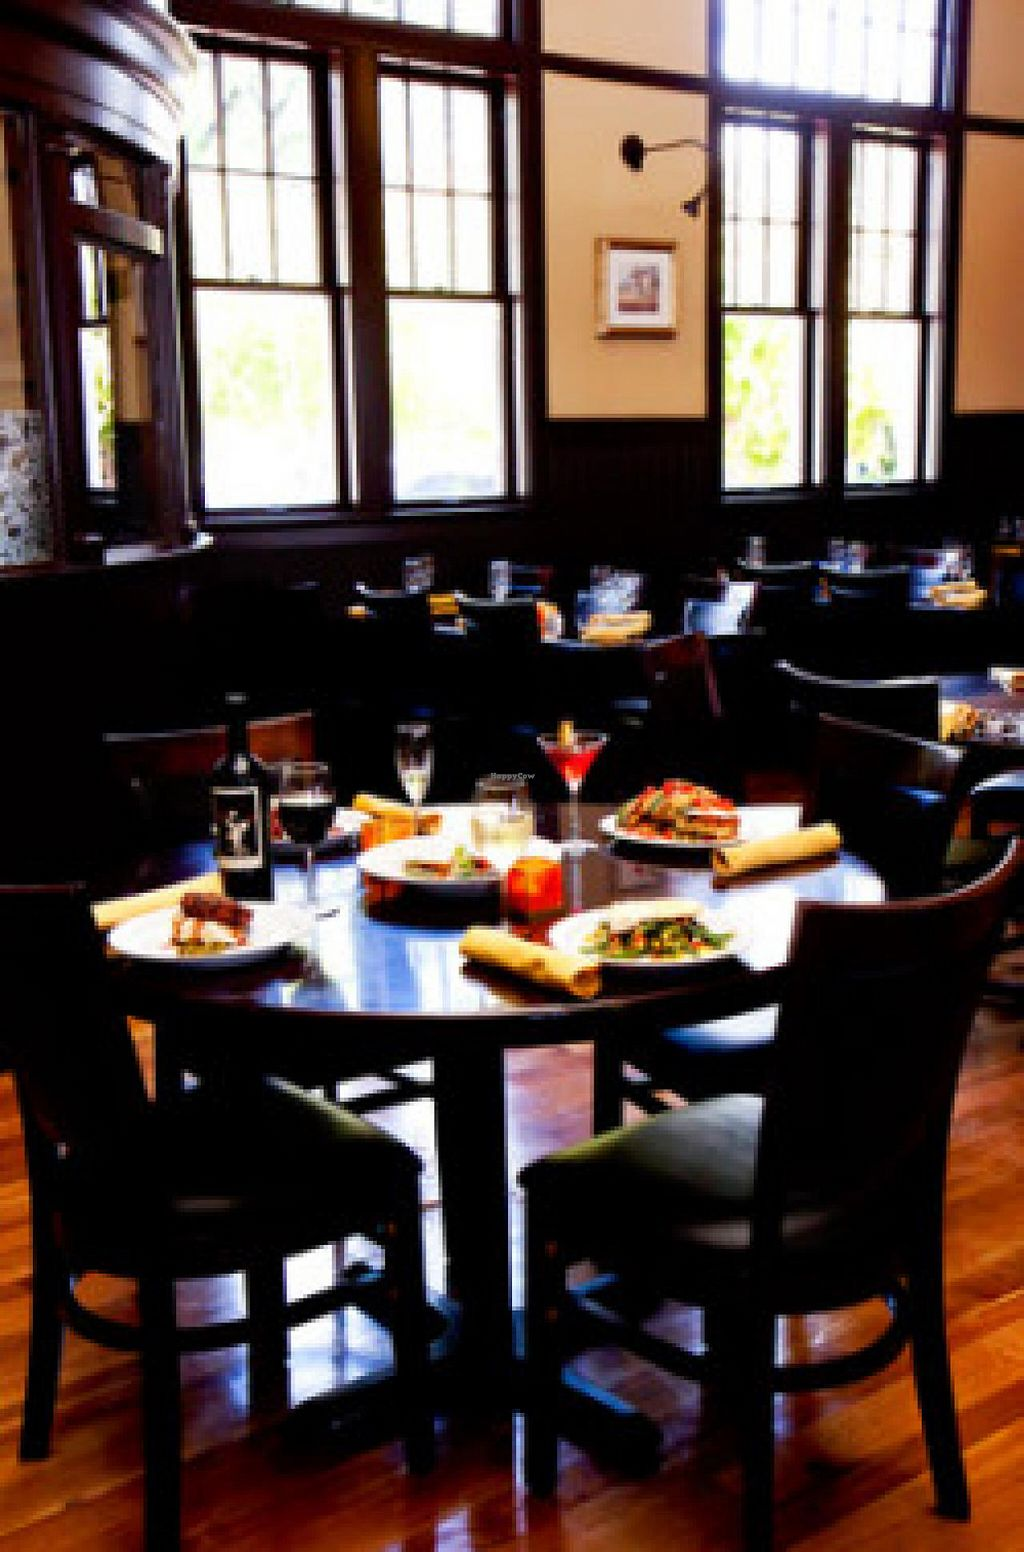 """Photo of Depot Grill  by <a href=""""/members/profile/Meggie%20and%20Ben"""">Meggie and Ben</a> <br/>Inside <br/> March 1, 2015  - <a href='/contact/abuse/image/56098/94457'>Report</a>"""